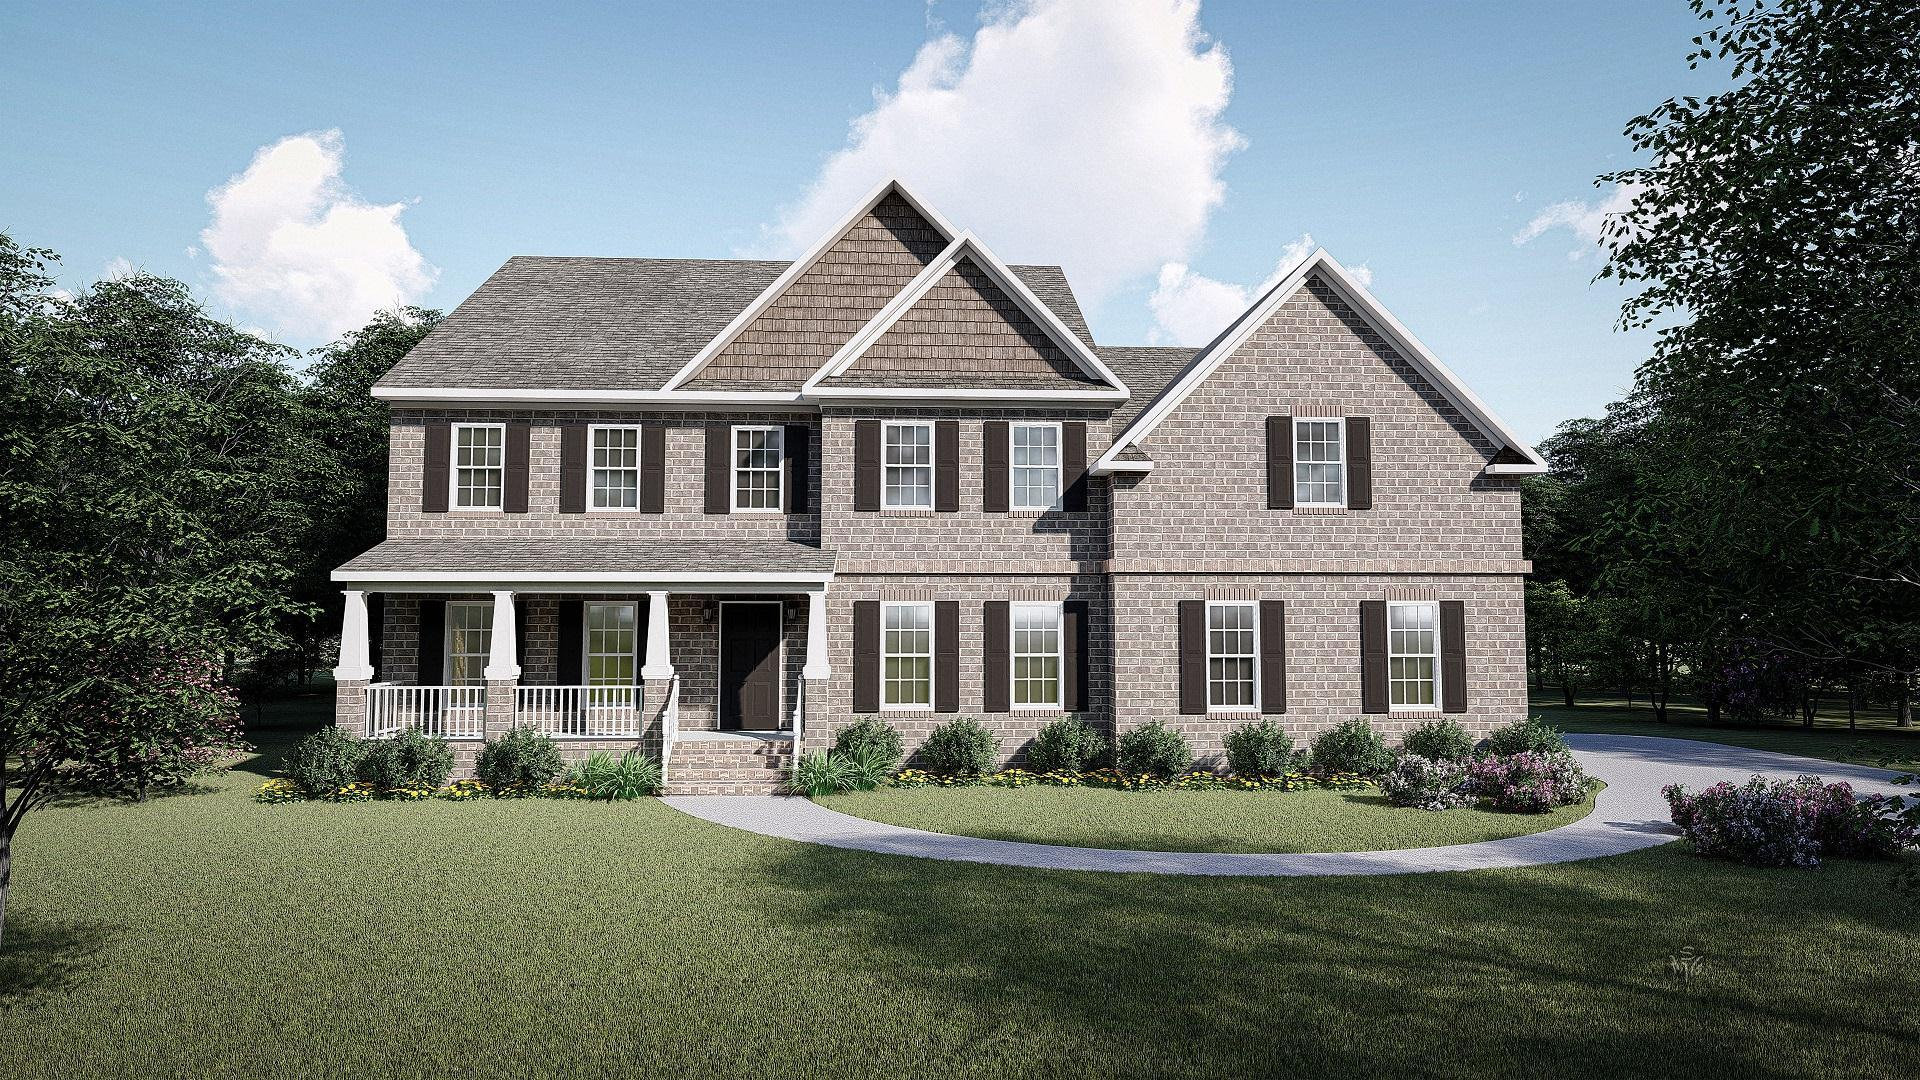 Brick Front w/Porch:The Wellsley